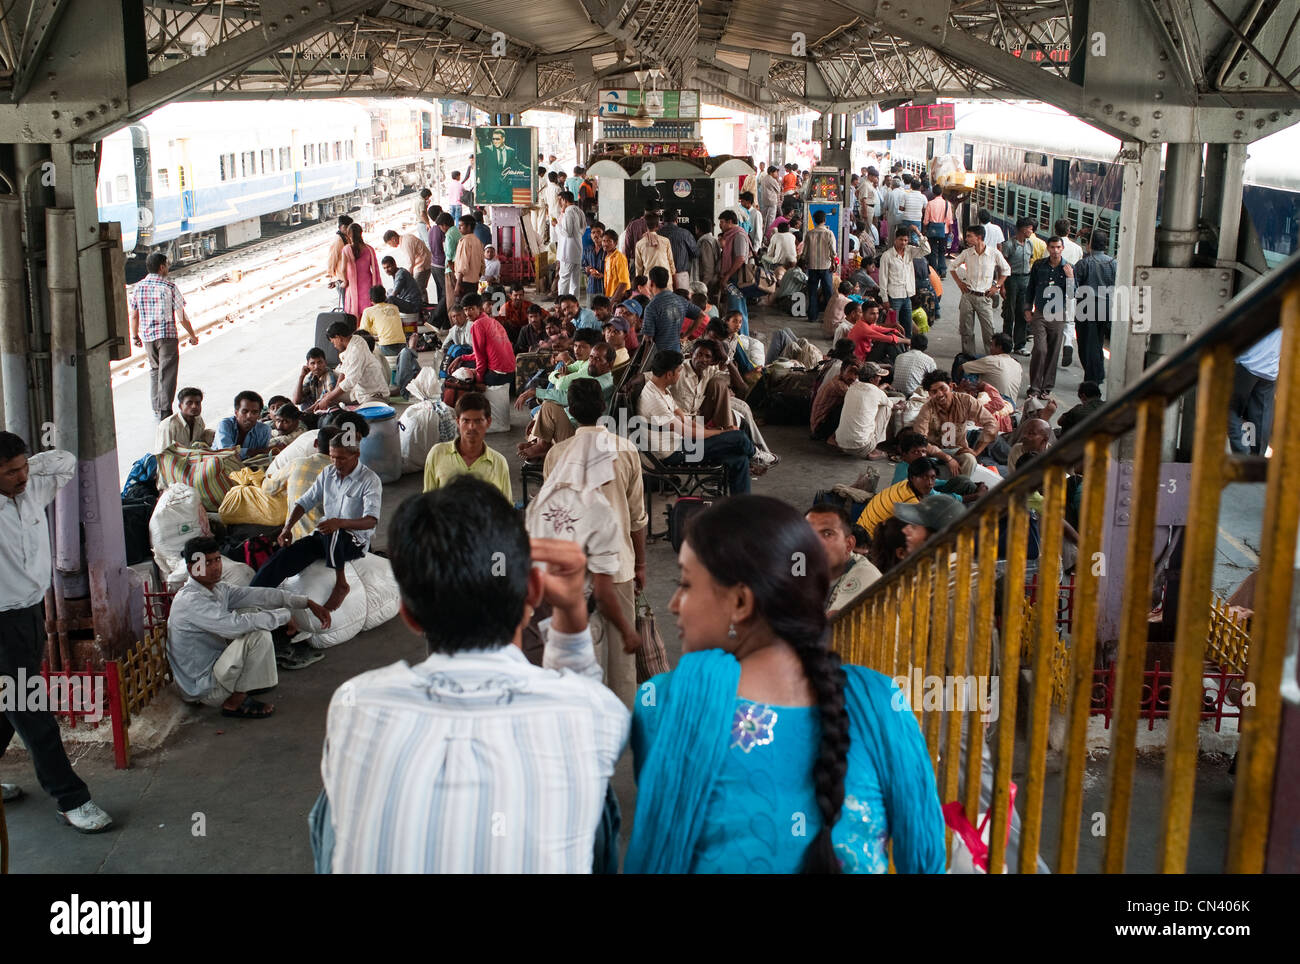 A busy train station in India - Stock Image